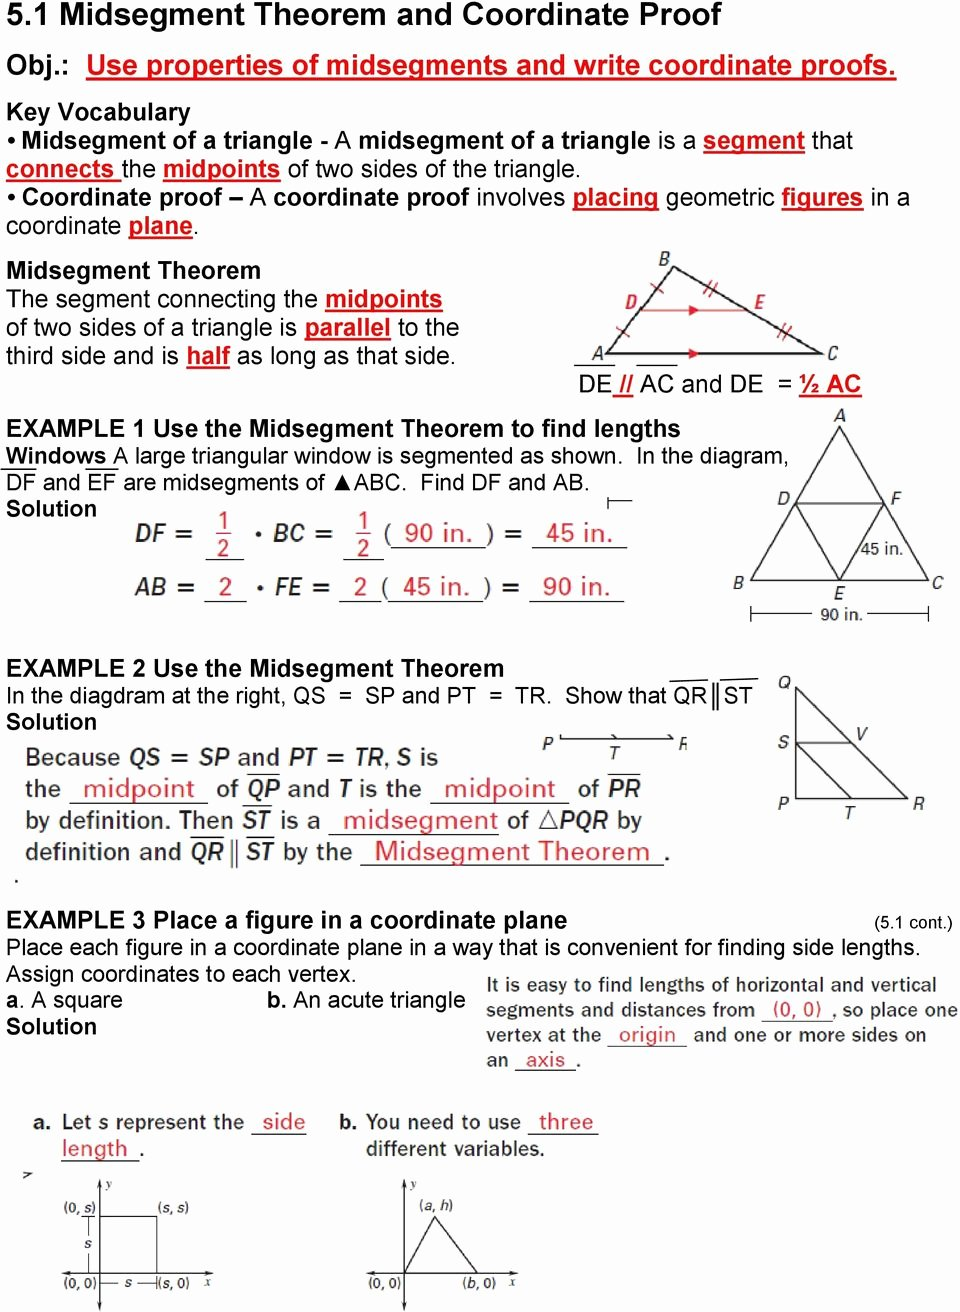 Midsegment Of A Triangle Worksheet Ideas 5 1 Midsegment theorem and Coordinate Proof Pdf Free Download